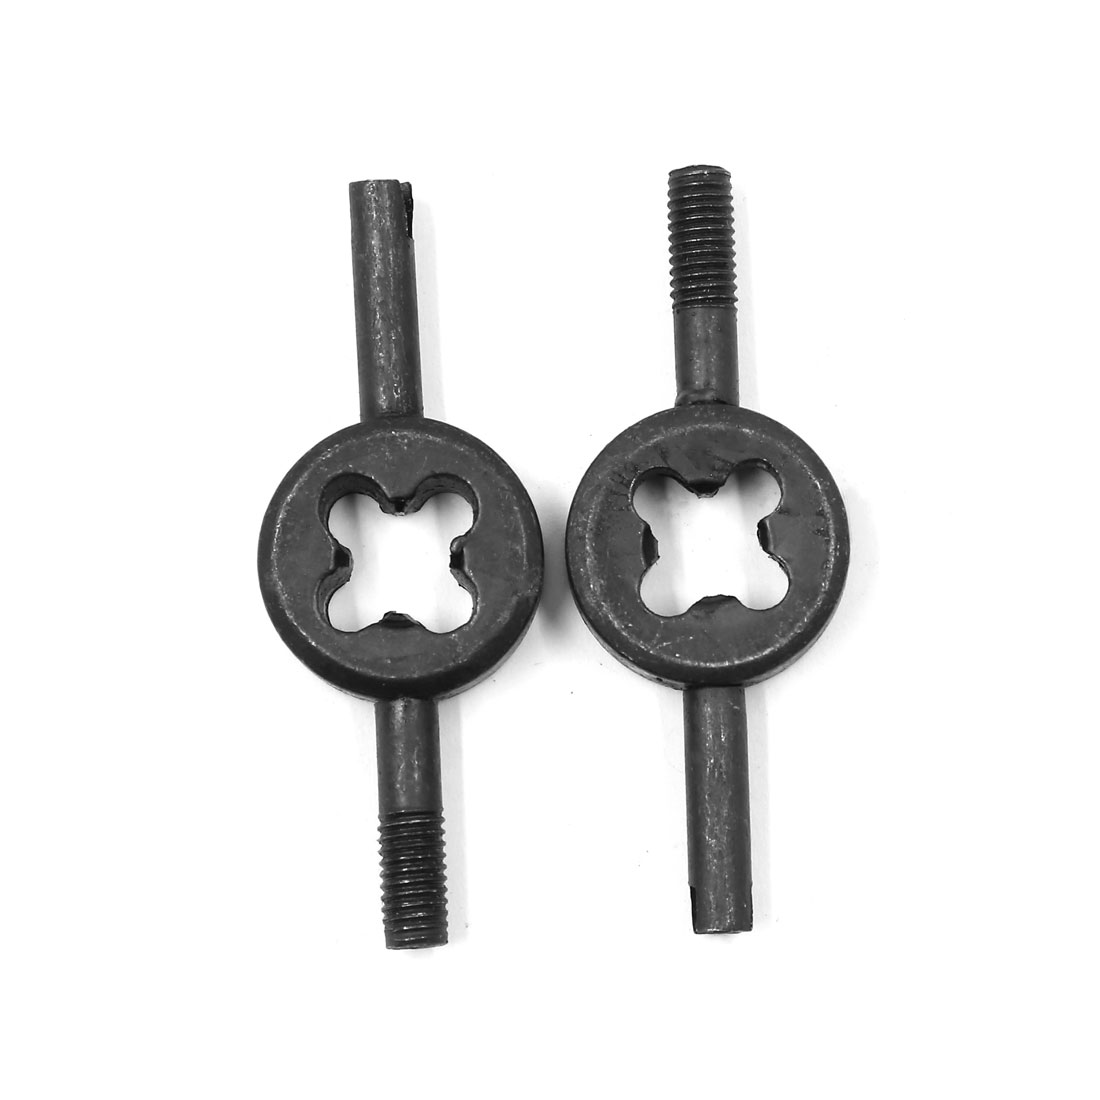 Motorcycle Bicycle Tire Core Remover Inside Spanner Wrench Repairing Tool 2 Pcs